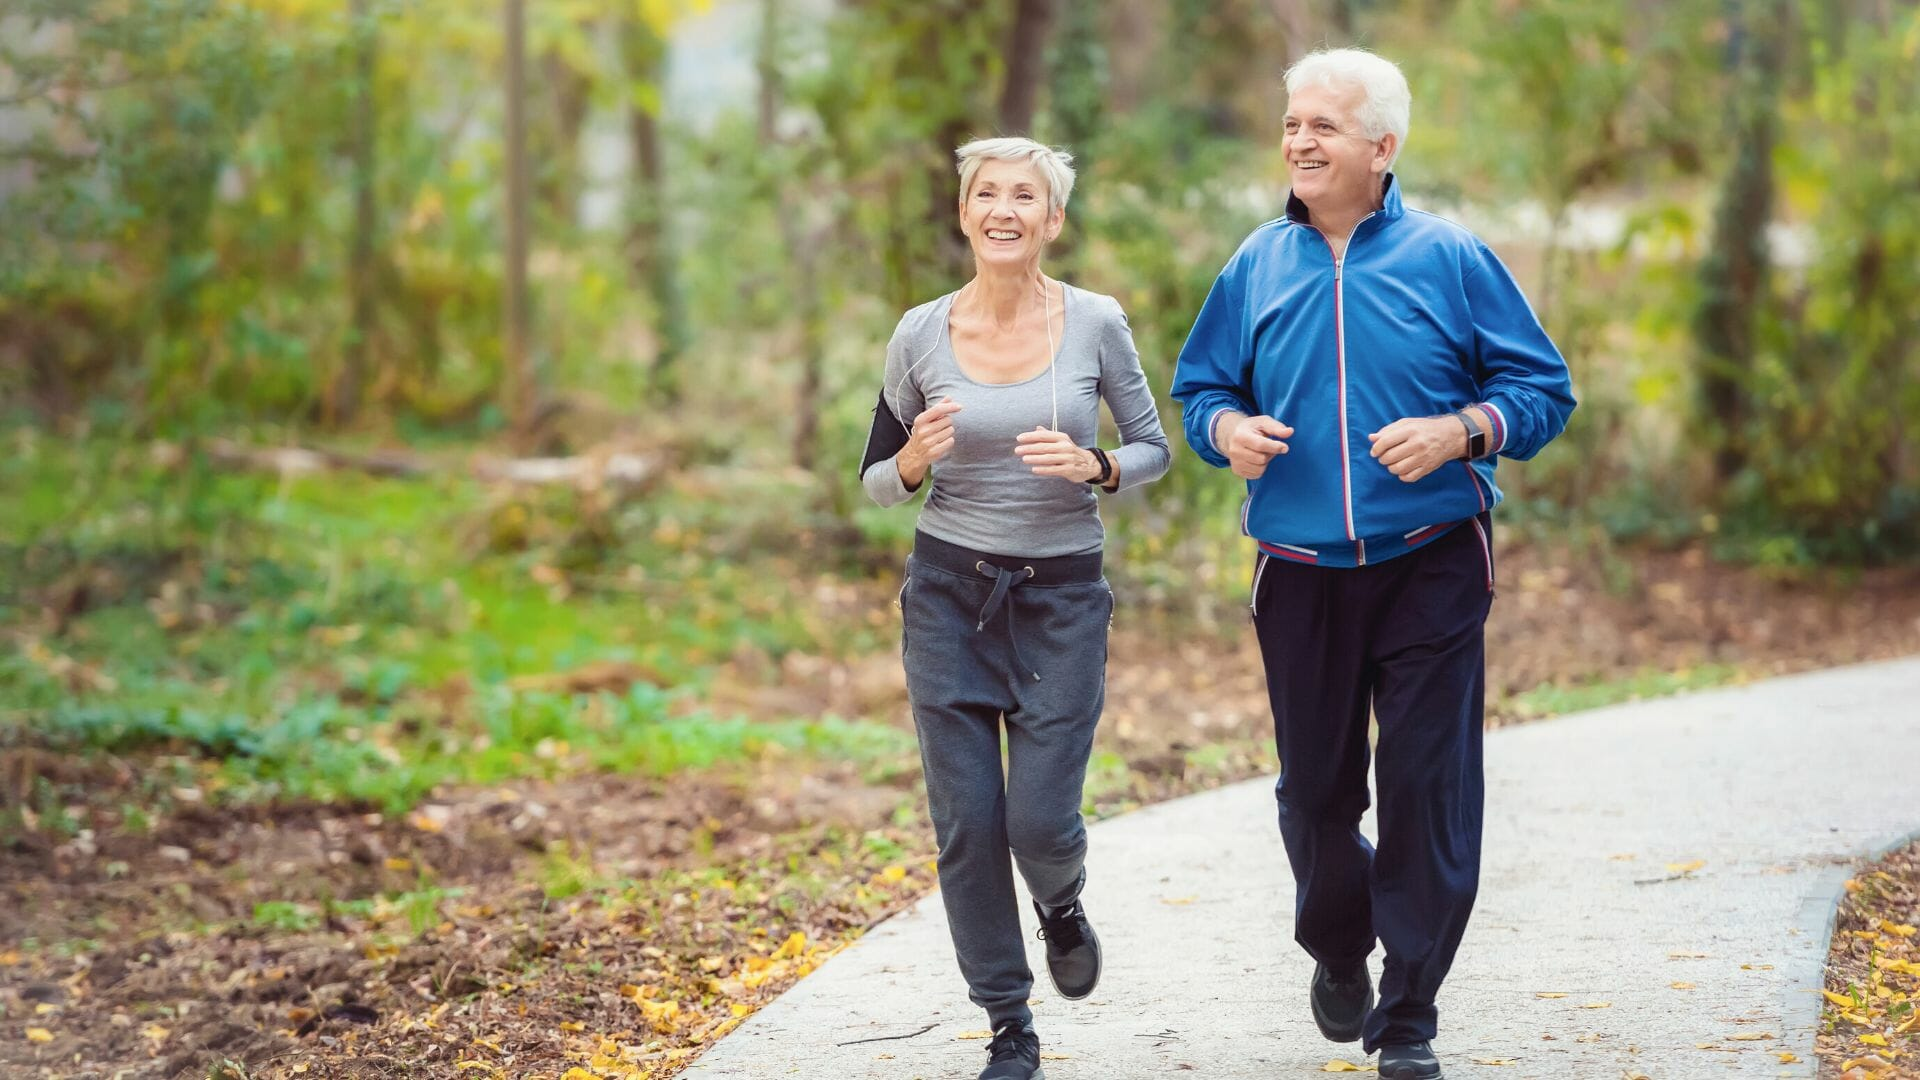 Elderly couple working out